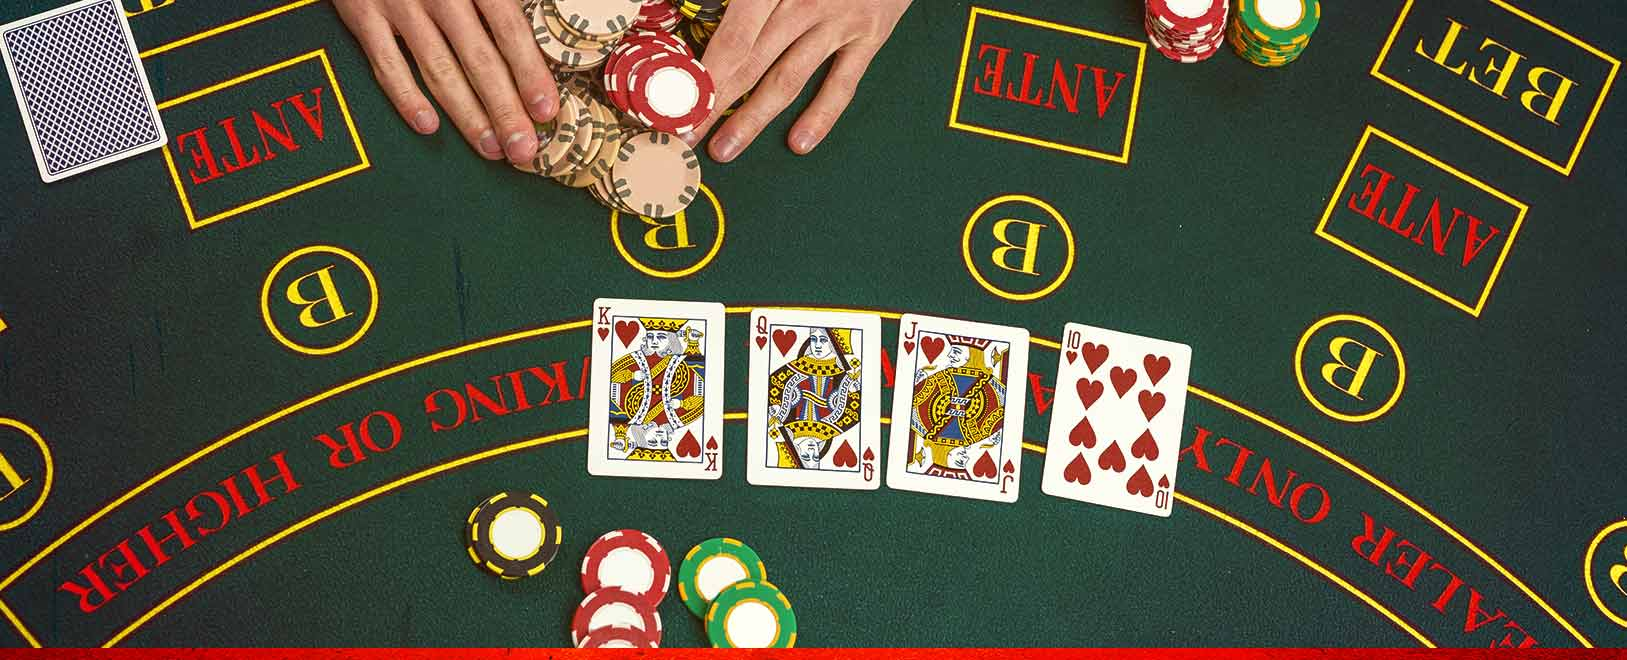 Poker Strategy: Five Reasons to Raise in Online Poker